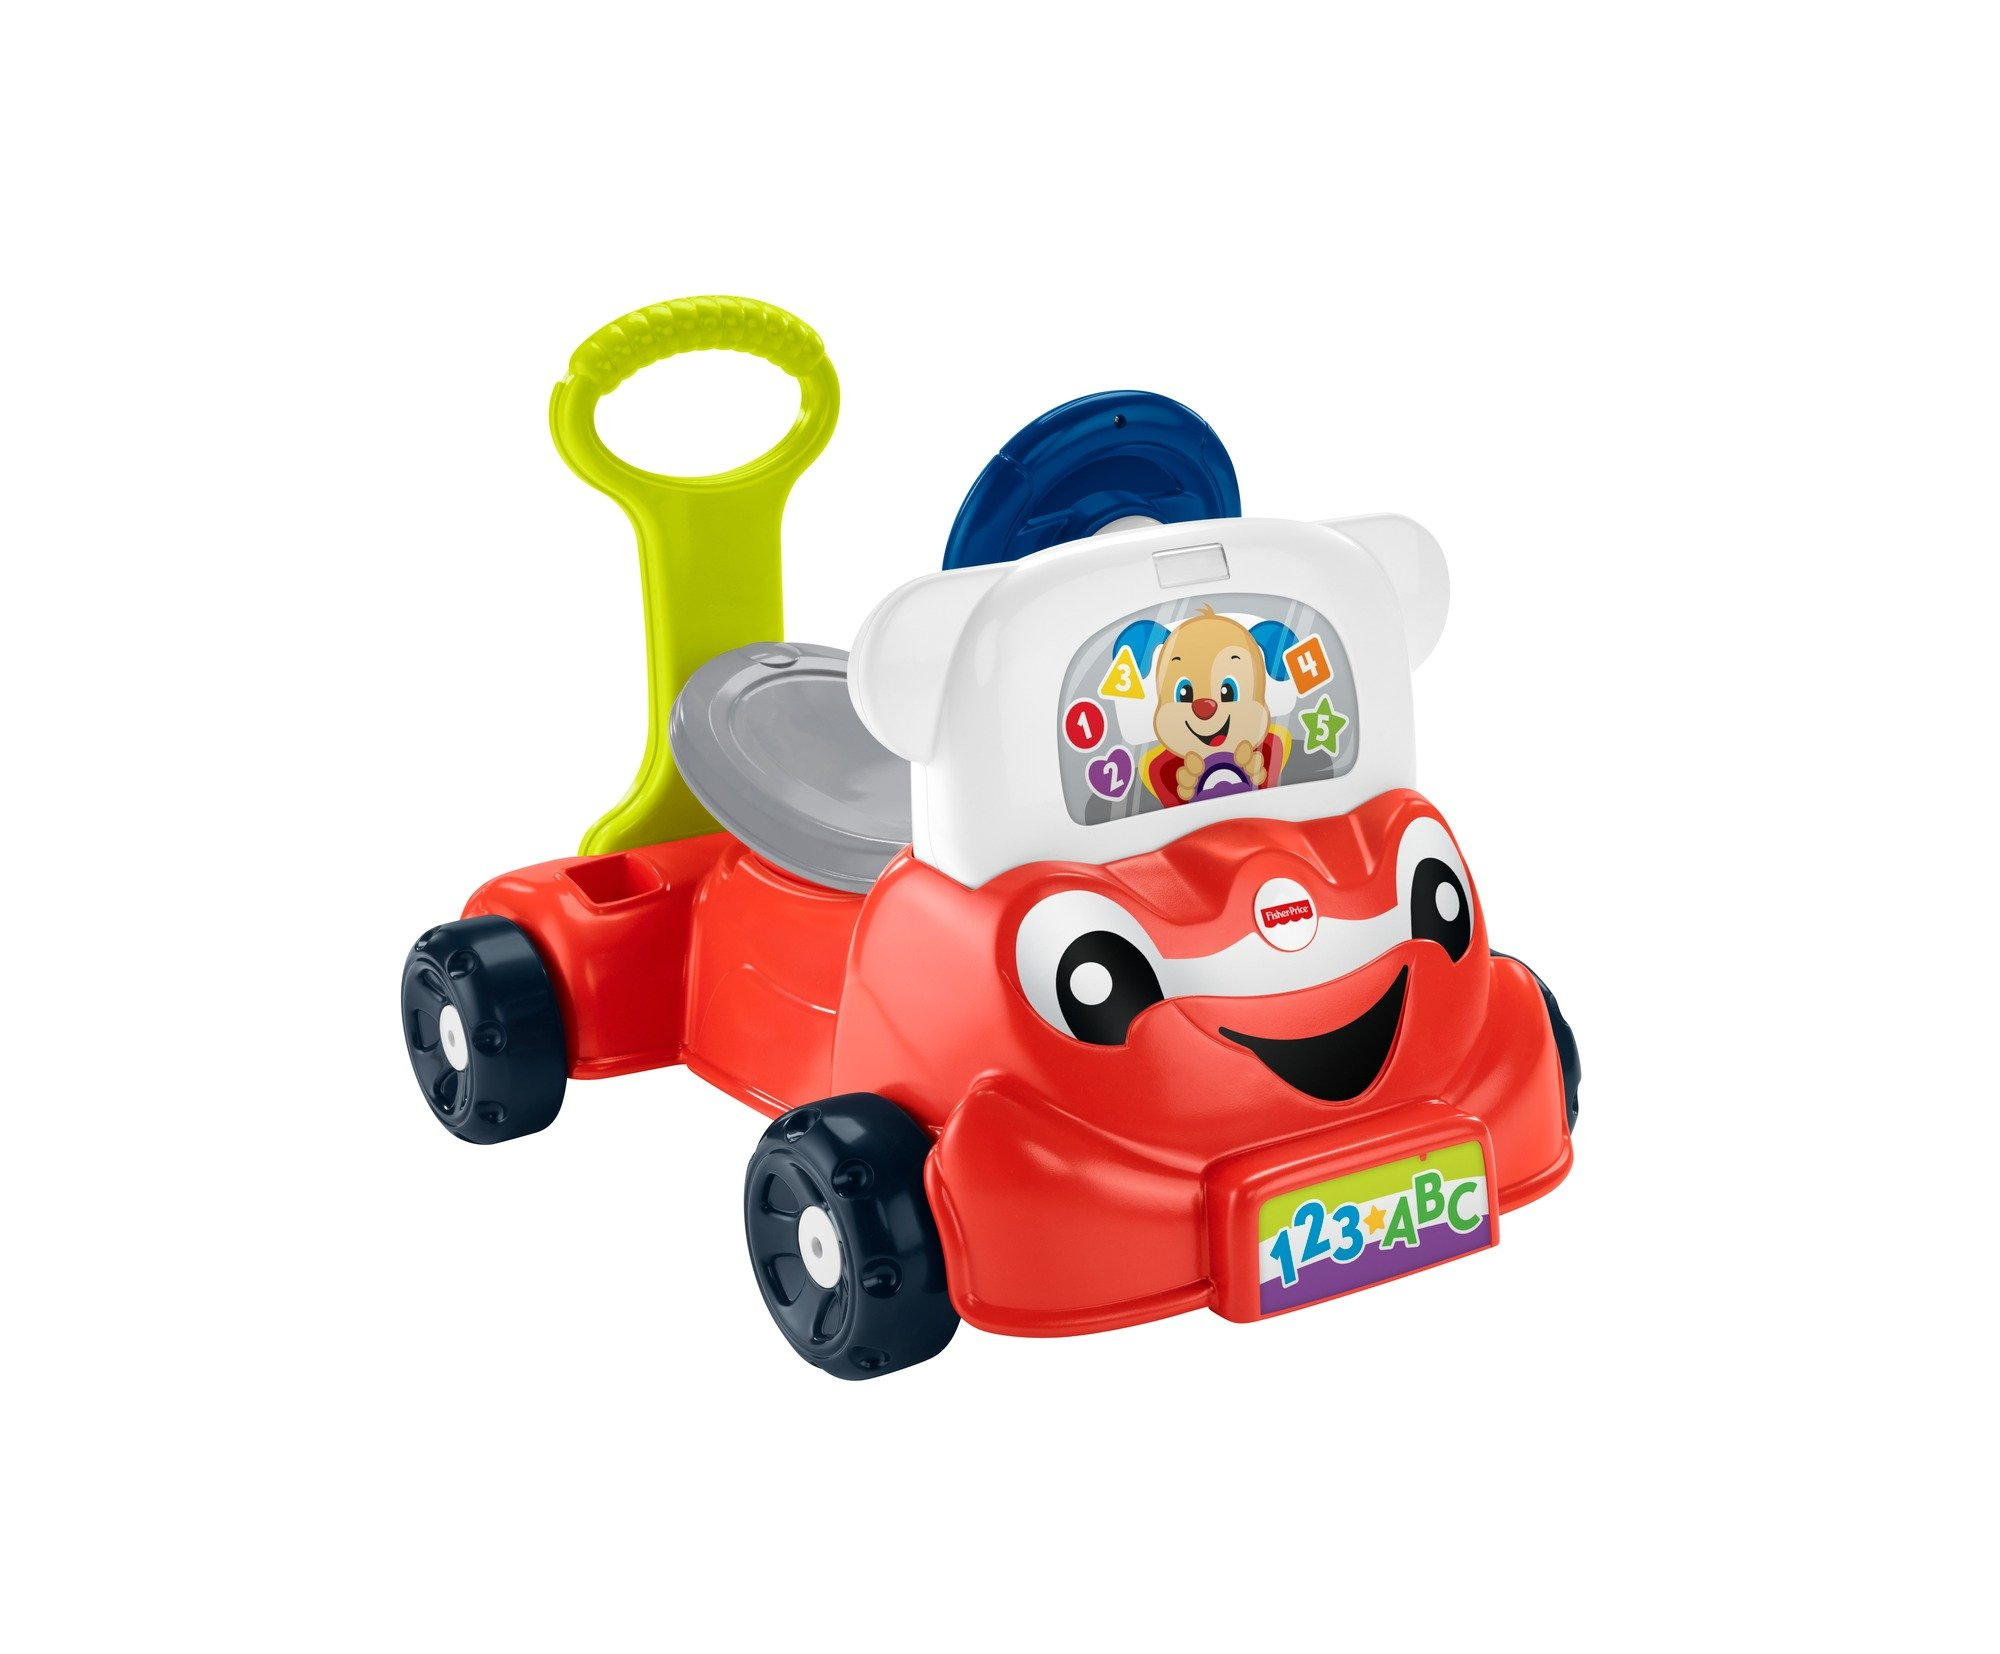 Fisher-Price GCY33 Laugh and Learn 3-in-1 Smart Car, Interactive Learning and Role Play Toy, Push Along Toy, Gift for 9 Months